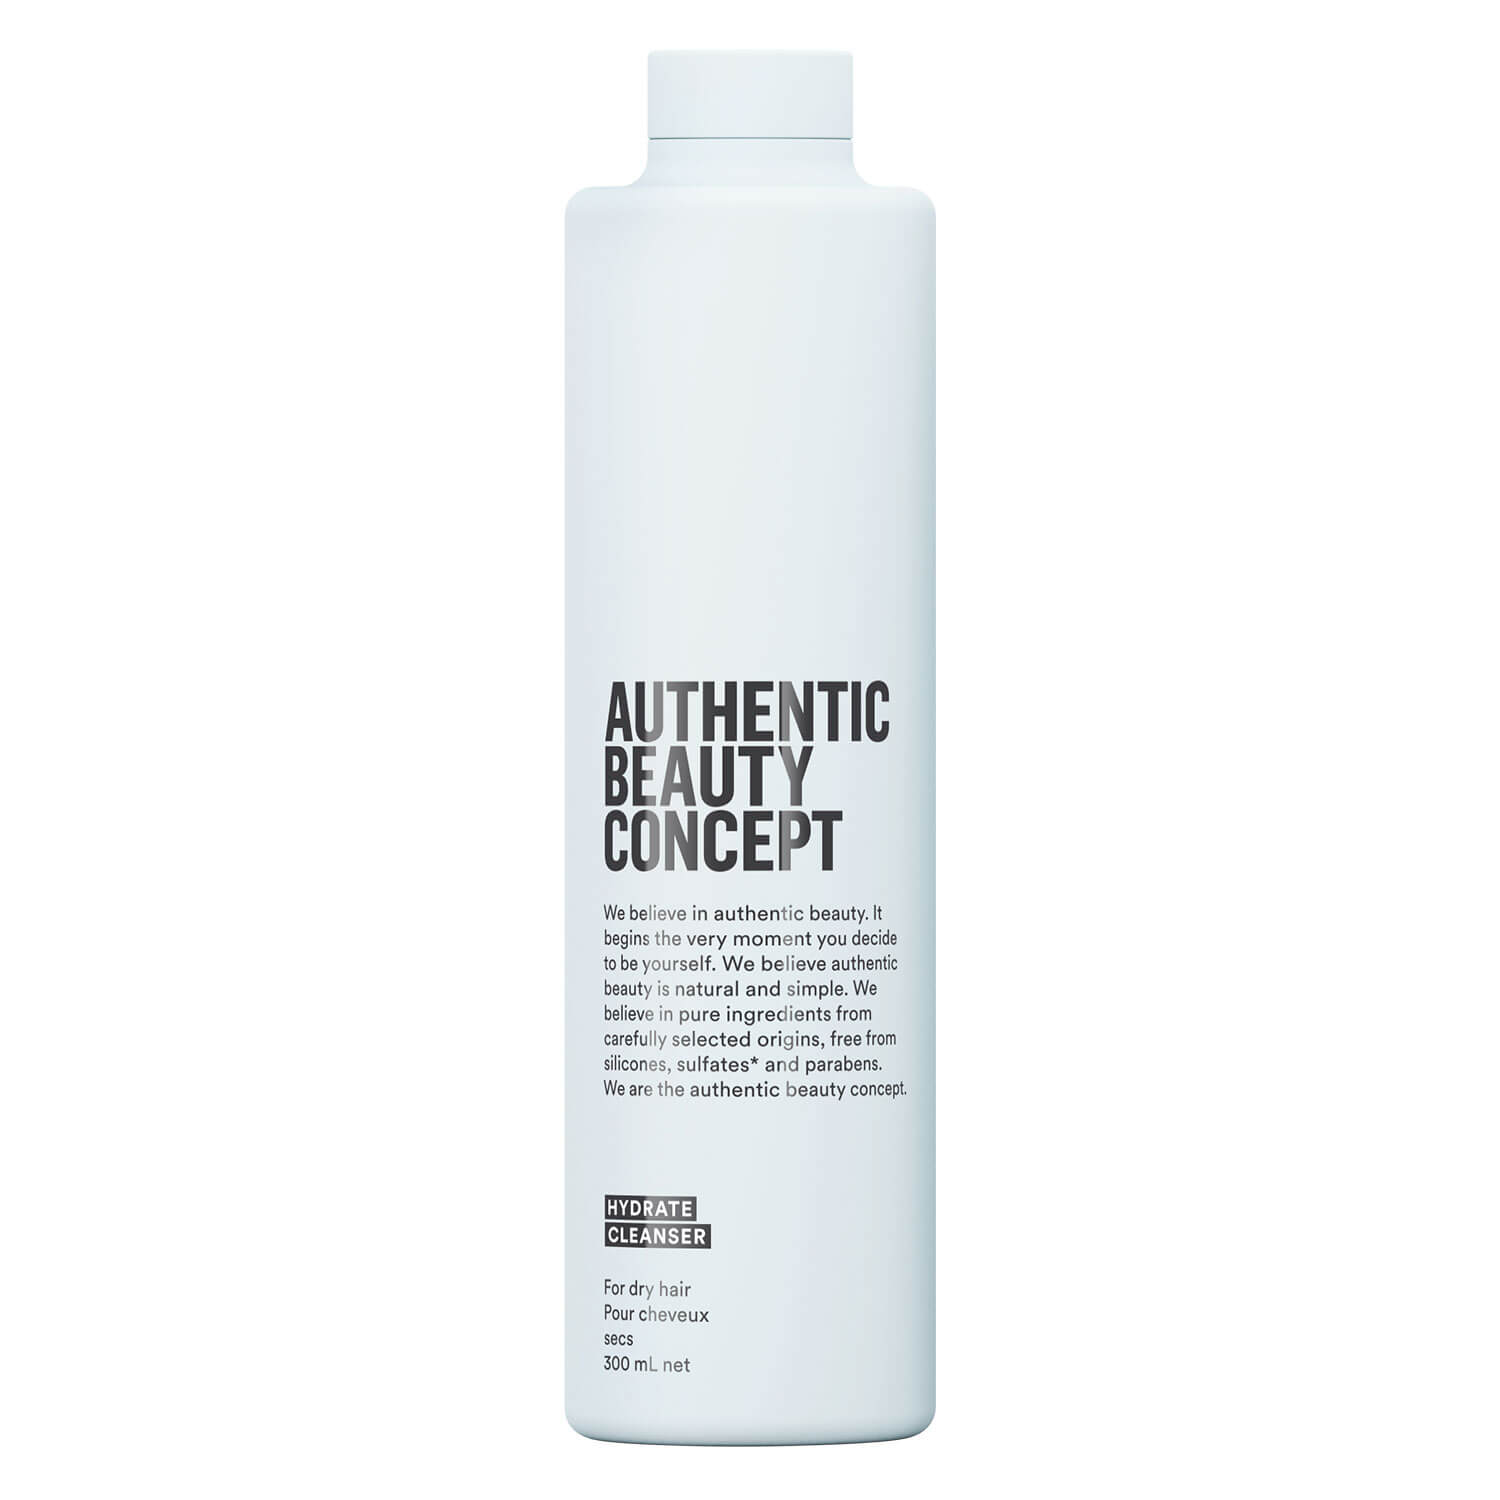 Authentic Beauty Concept - Hydrate Cleanser - 300ml